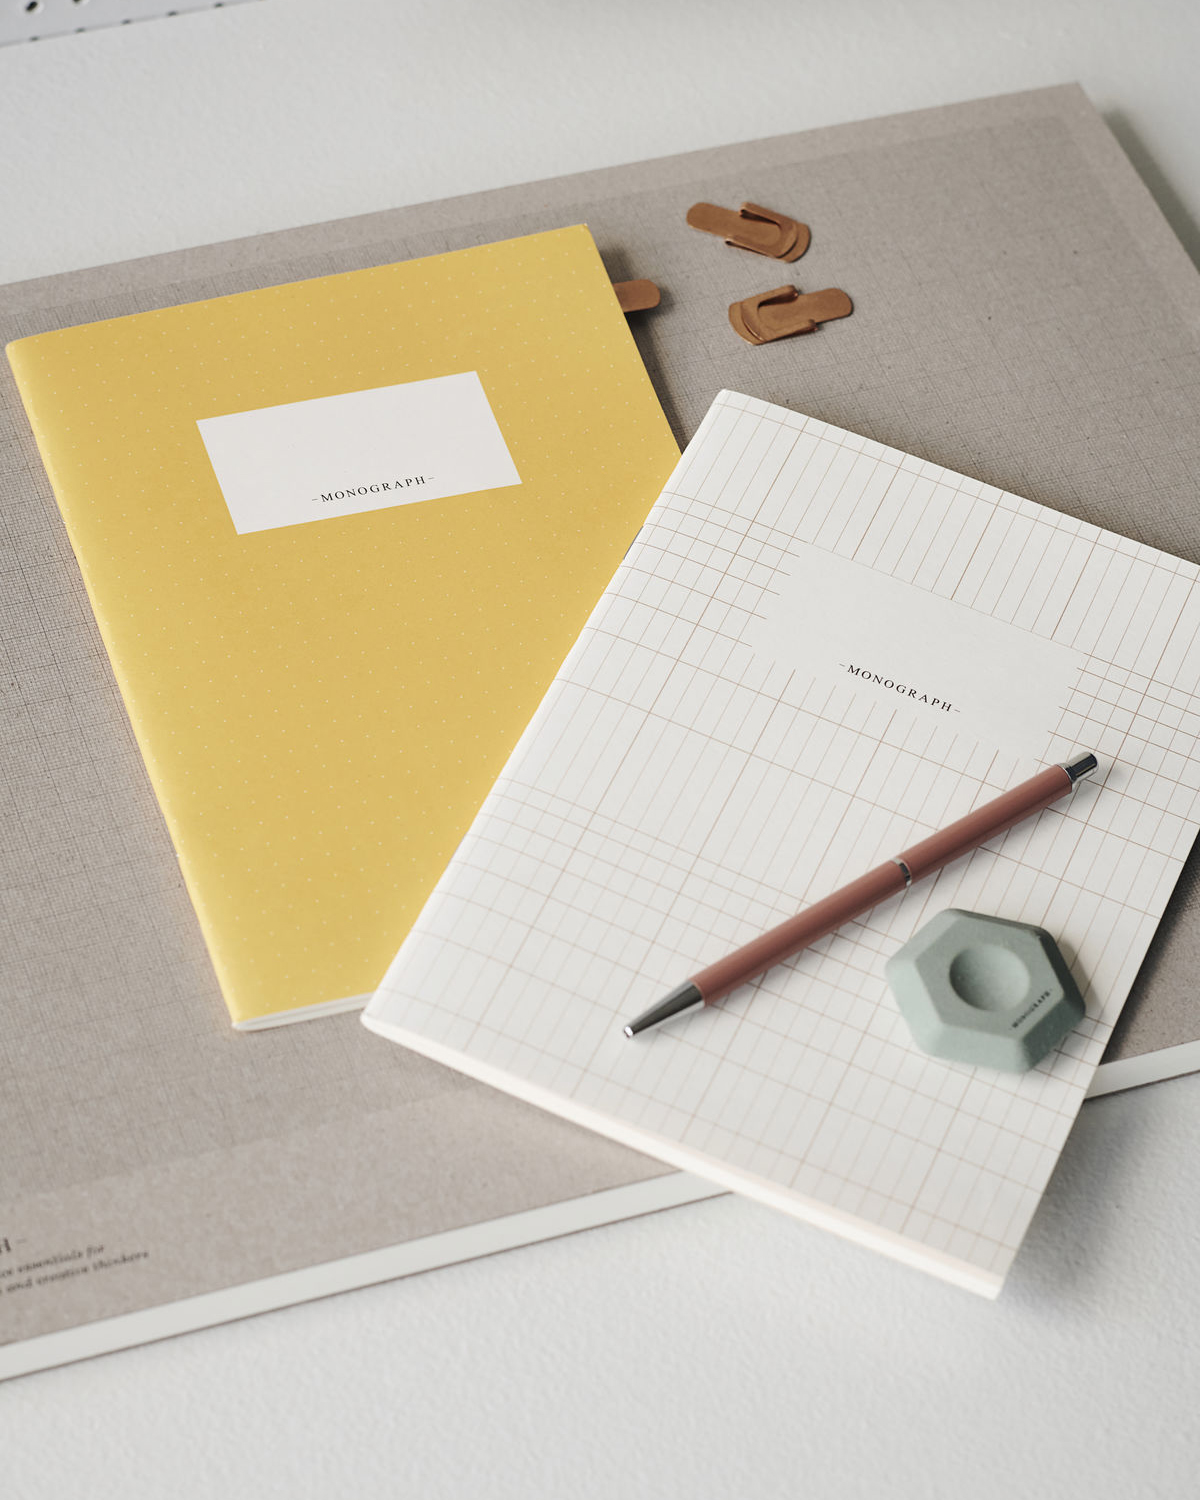 Note book, Linies, Angora/Yellow, Set of 2 designs, 60 pages, A5, Ruled/Dotted paper